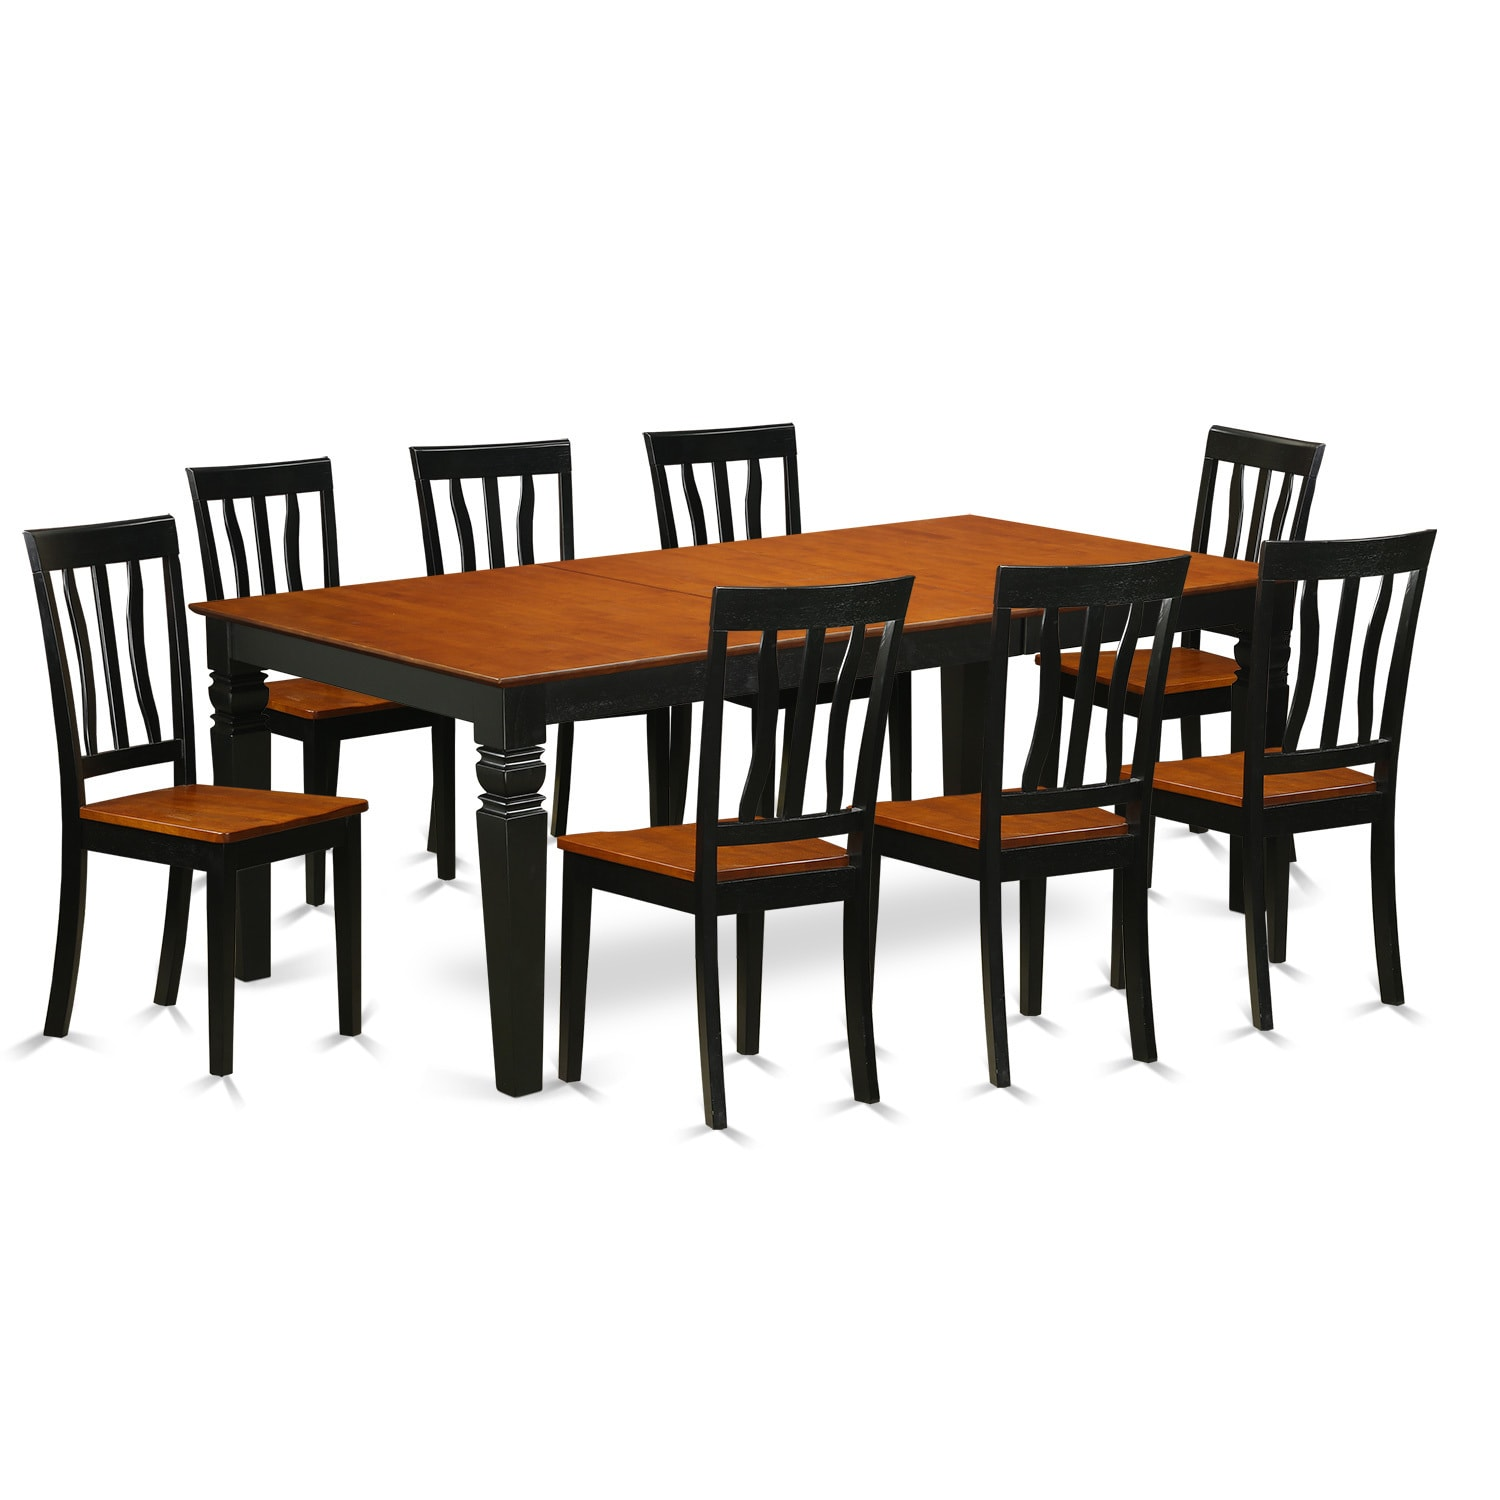 9 Piece Dining Set With 1 Logan Table And 8 Chairs In Black Cherry Finish